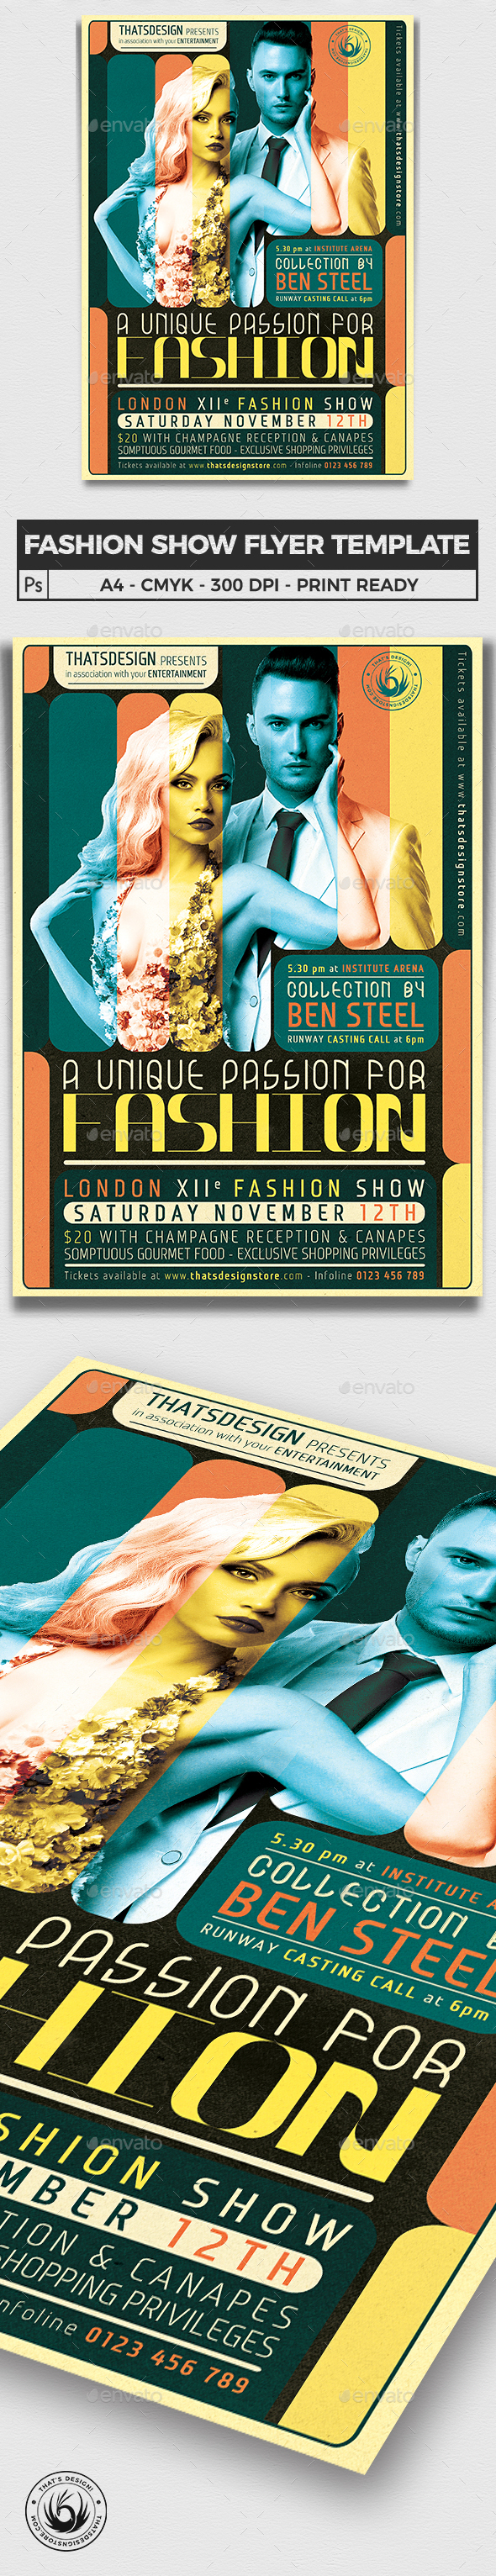 Fashion Show Flyer Template V1 - Events Flyers